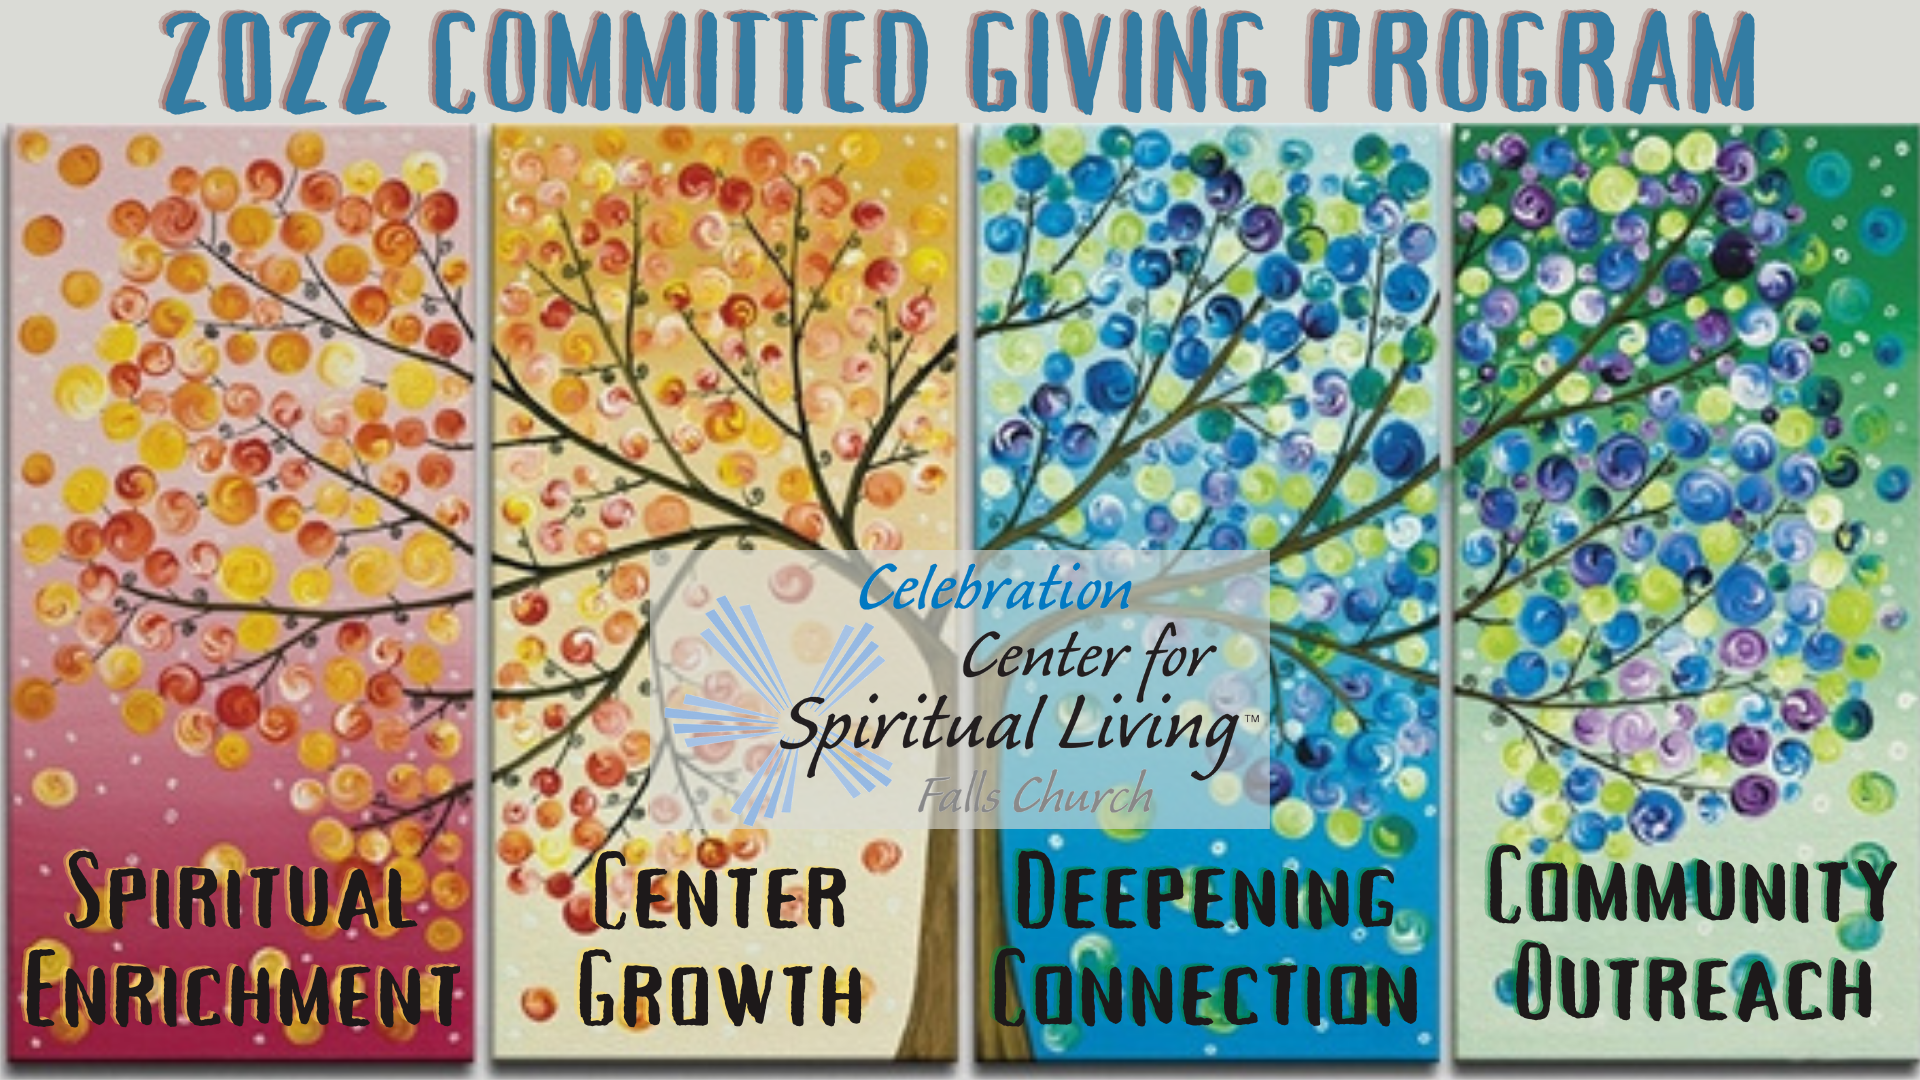 2022 Committed Giving Program